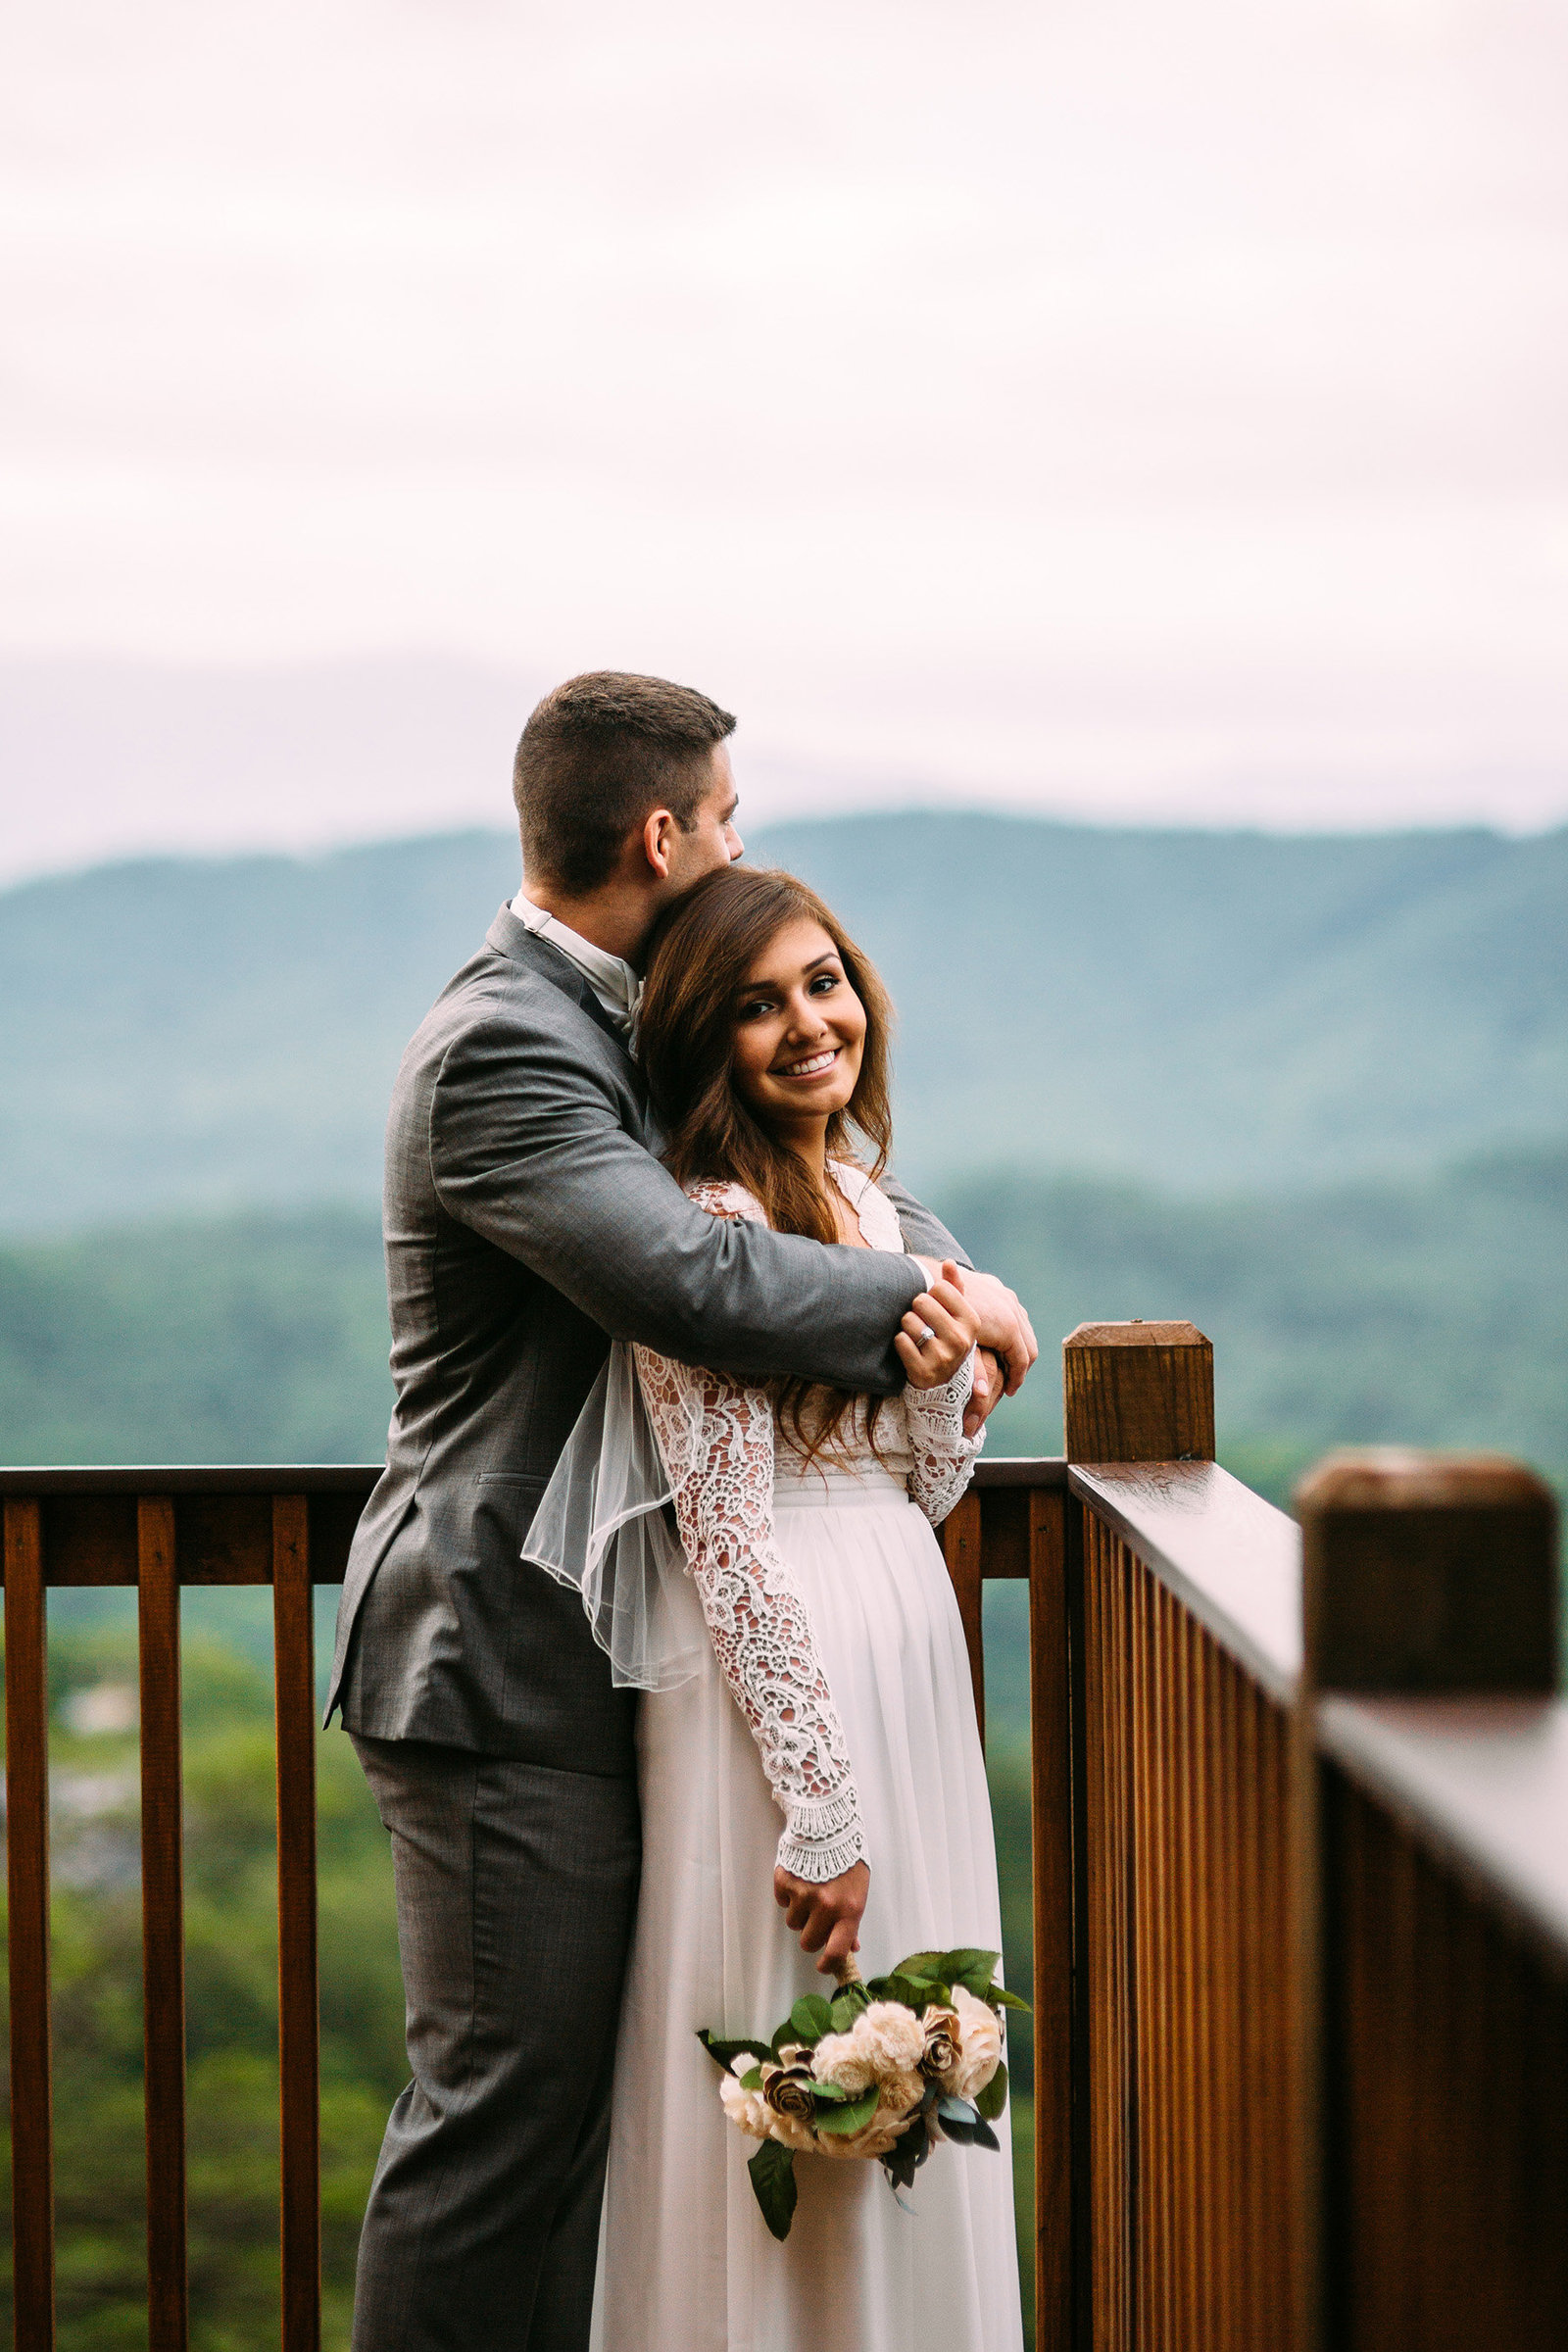 SaraLane-Stevie-Wedding-Elopement-Mountain-Photography-Graciela-Austin-LR-27PS-SMALL